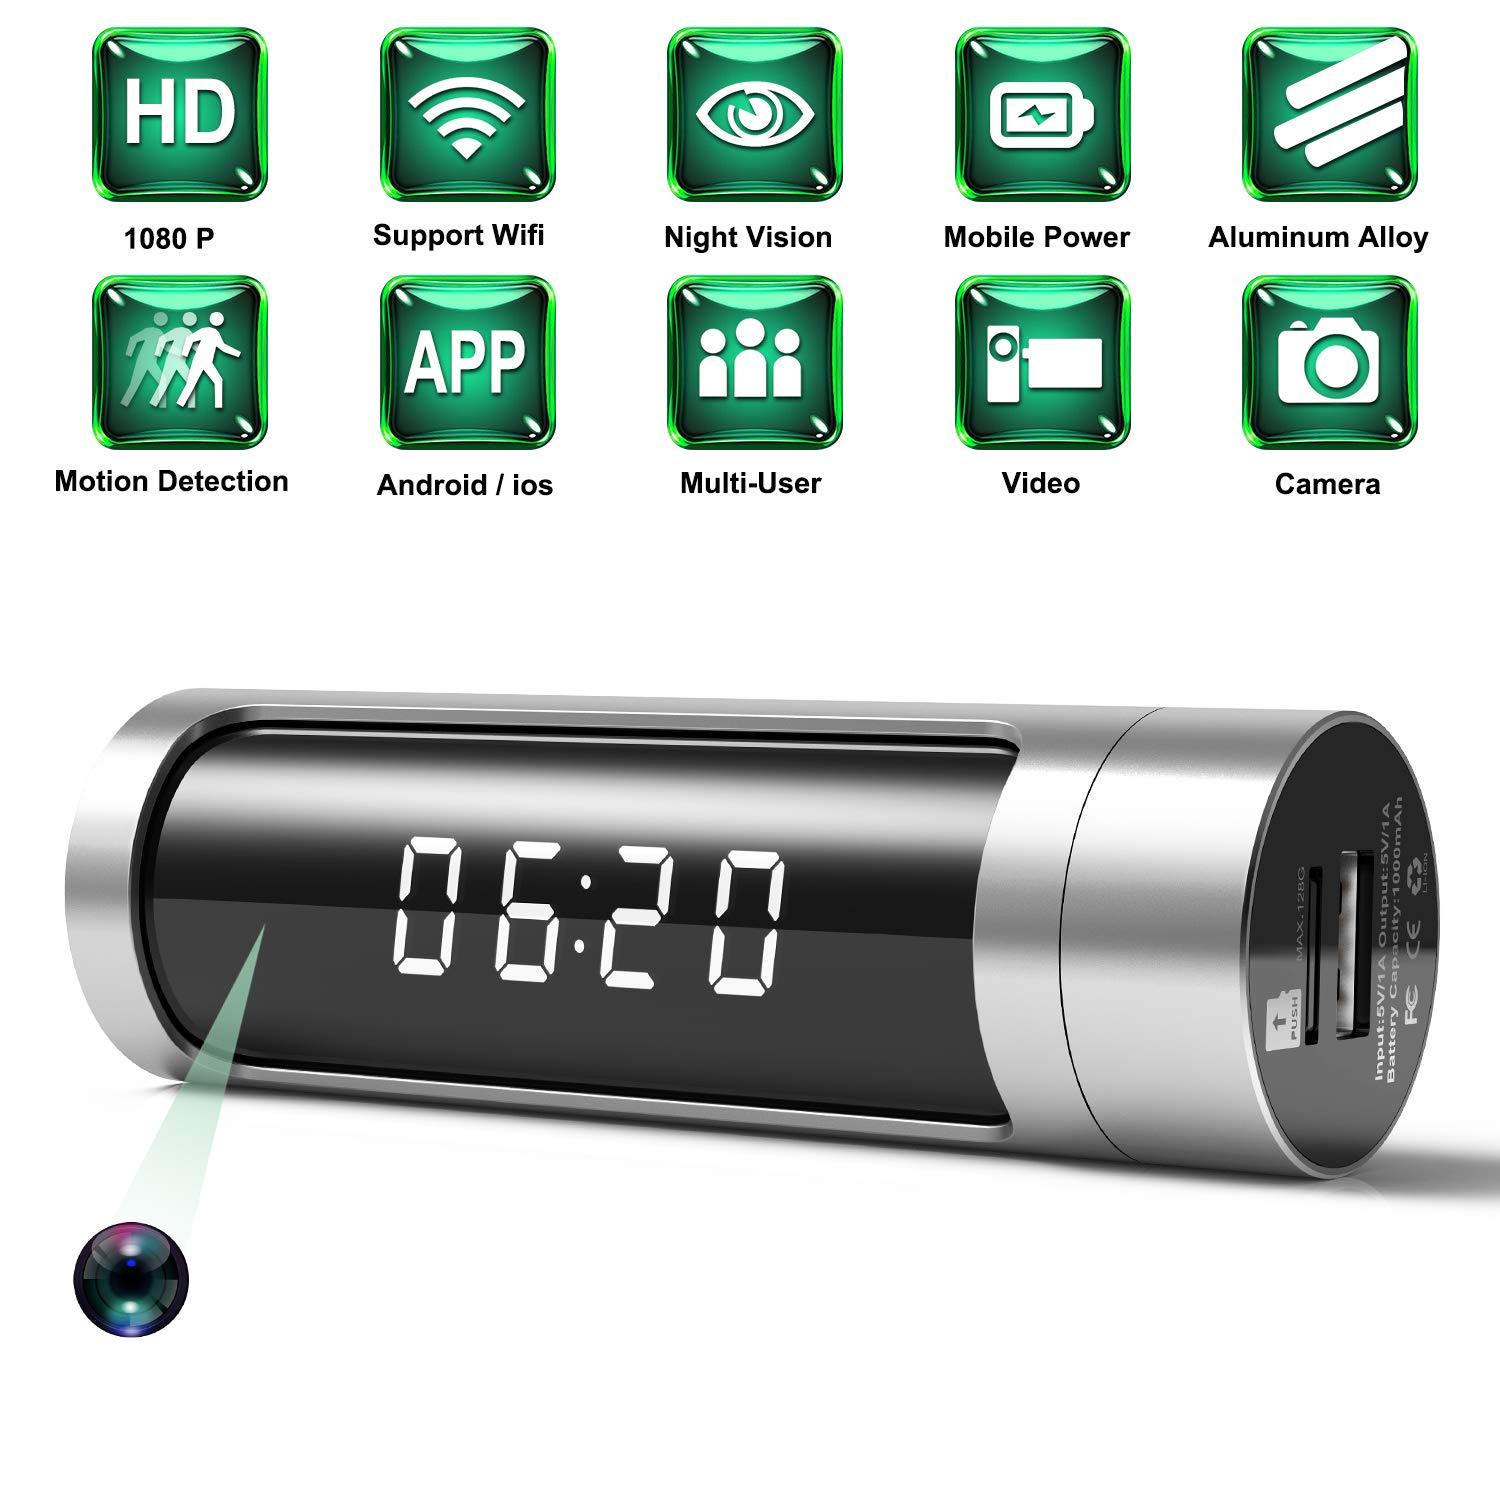 Spy Camera, 1080P Hidden Camera Clock WiFi Wireless IP Cameras Aluminium Alloys Housing Video Recorder for Home Security Monitoring Nanny Cam with Night Vision Motion Detection Power Bank(Latest) by ELValley